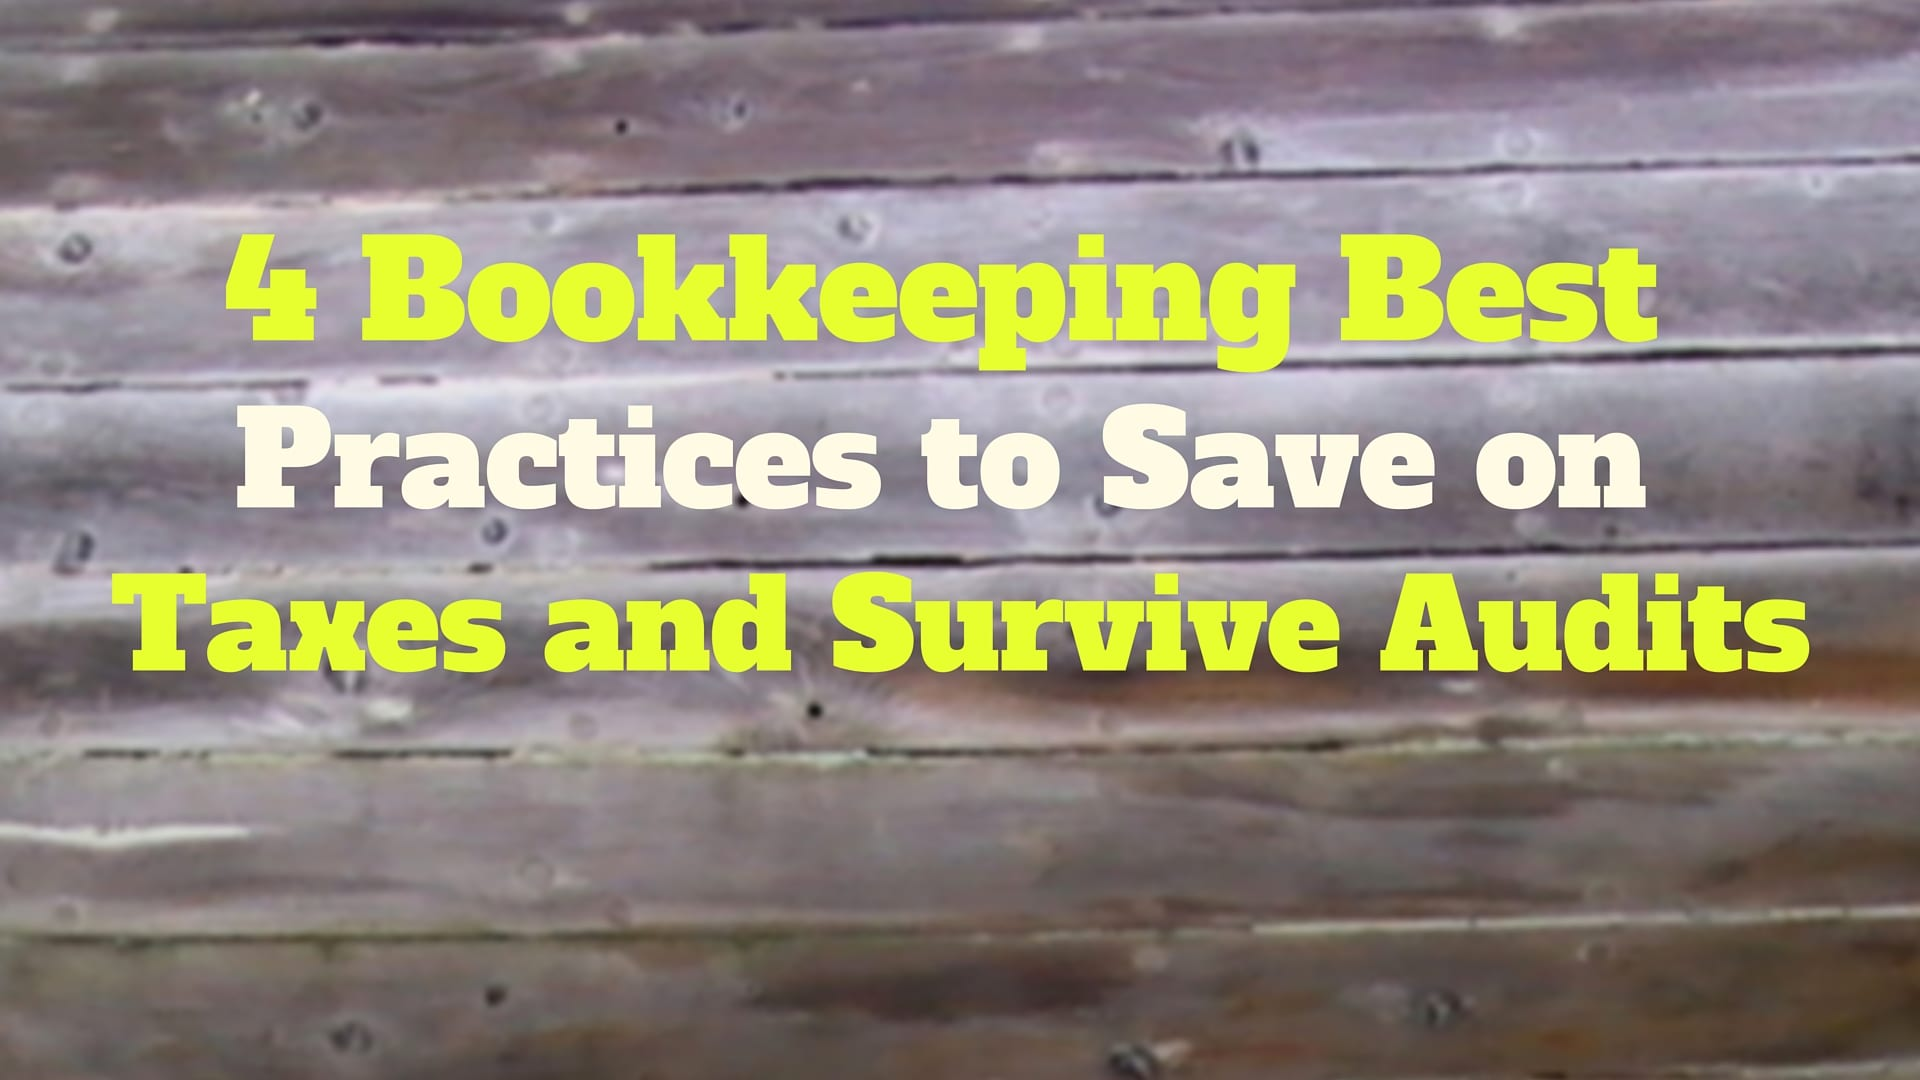 4 Bookkeeping Best Practices to Save on Taxes and Survive Audits